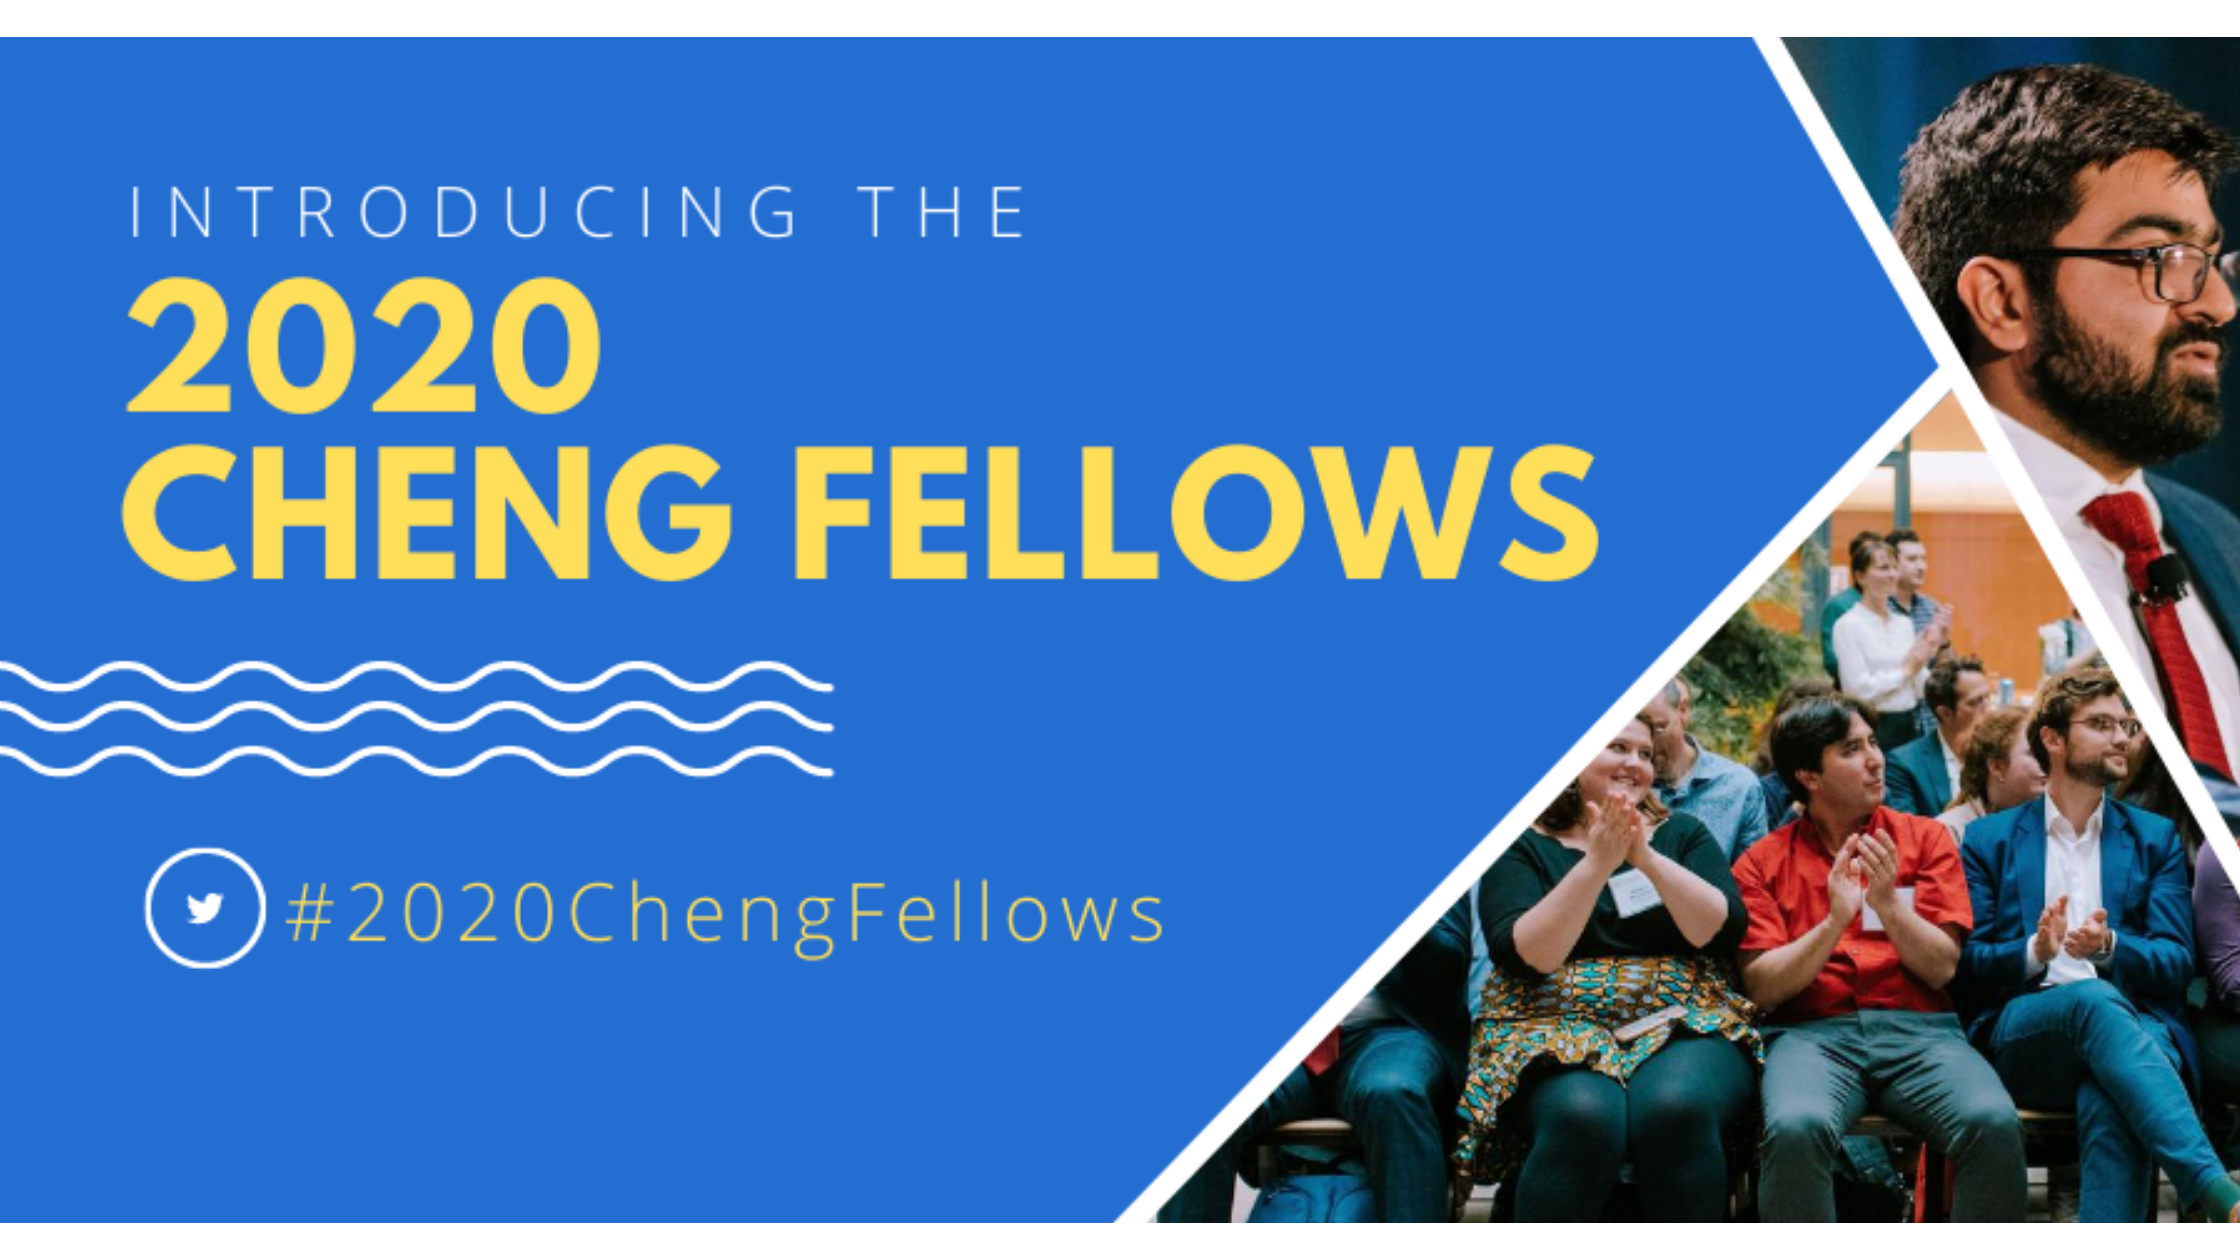 Meet the 2020 Cheng Fellows!